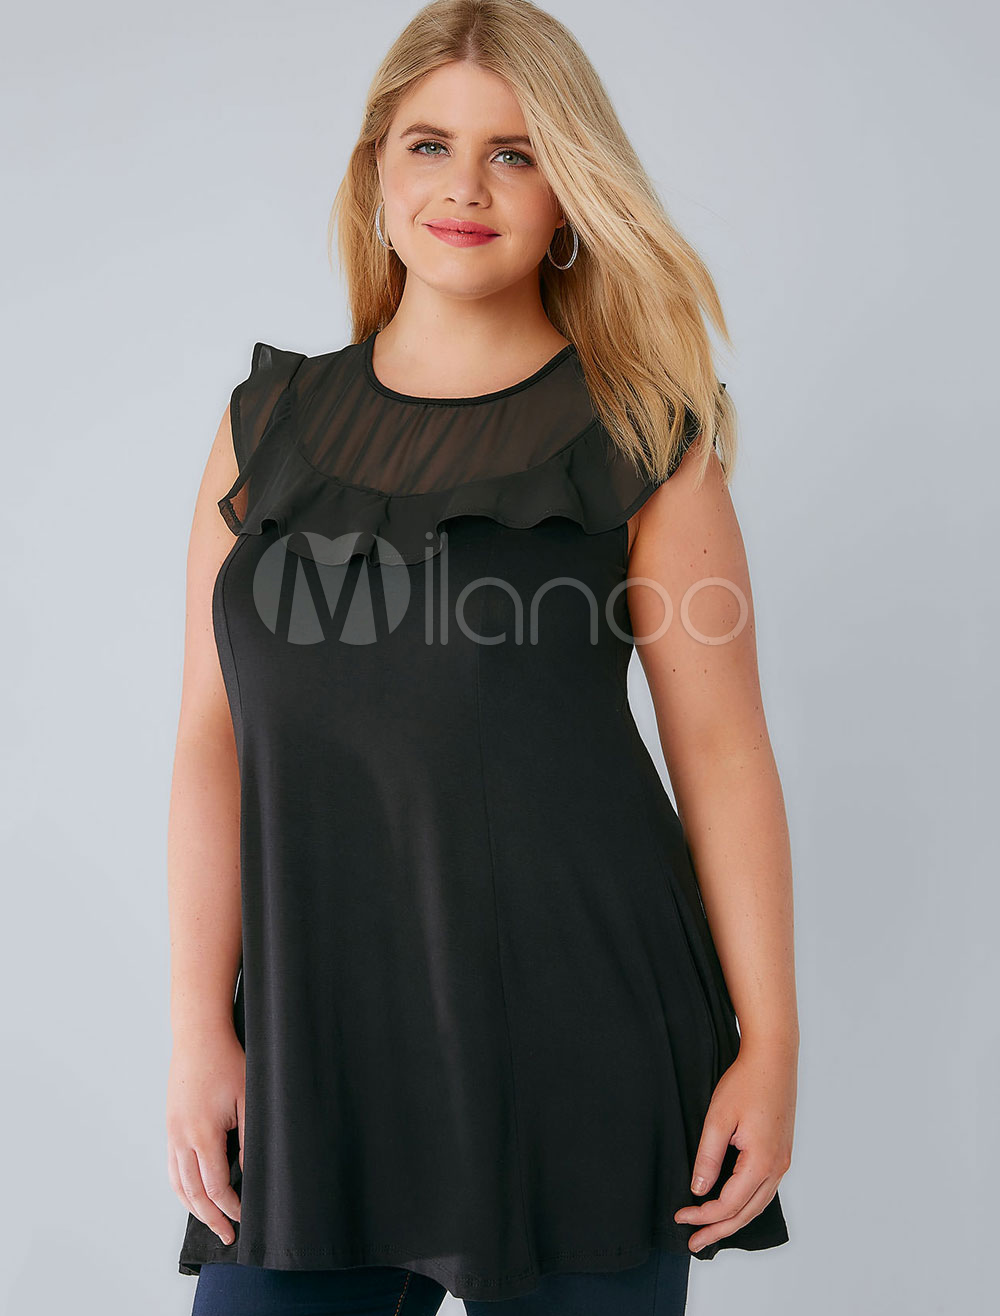 Buy Women's Black Tank Plus Size Round Neck Sleeveless Cotton Casual Top for $15.29 in Milanoo store